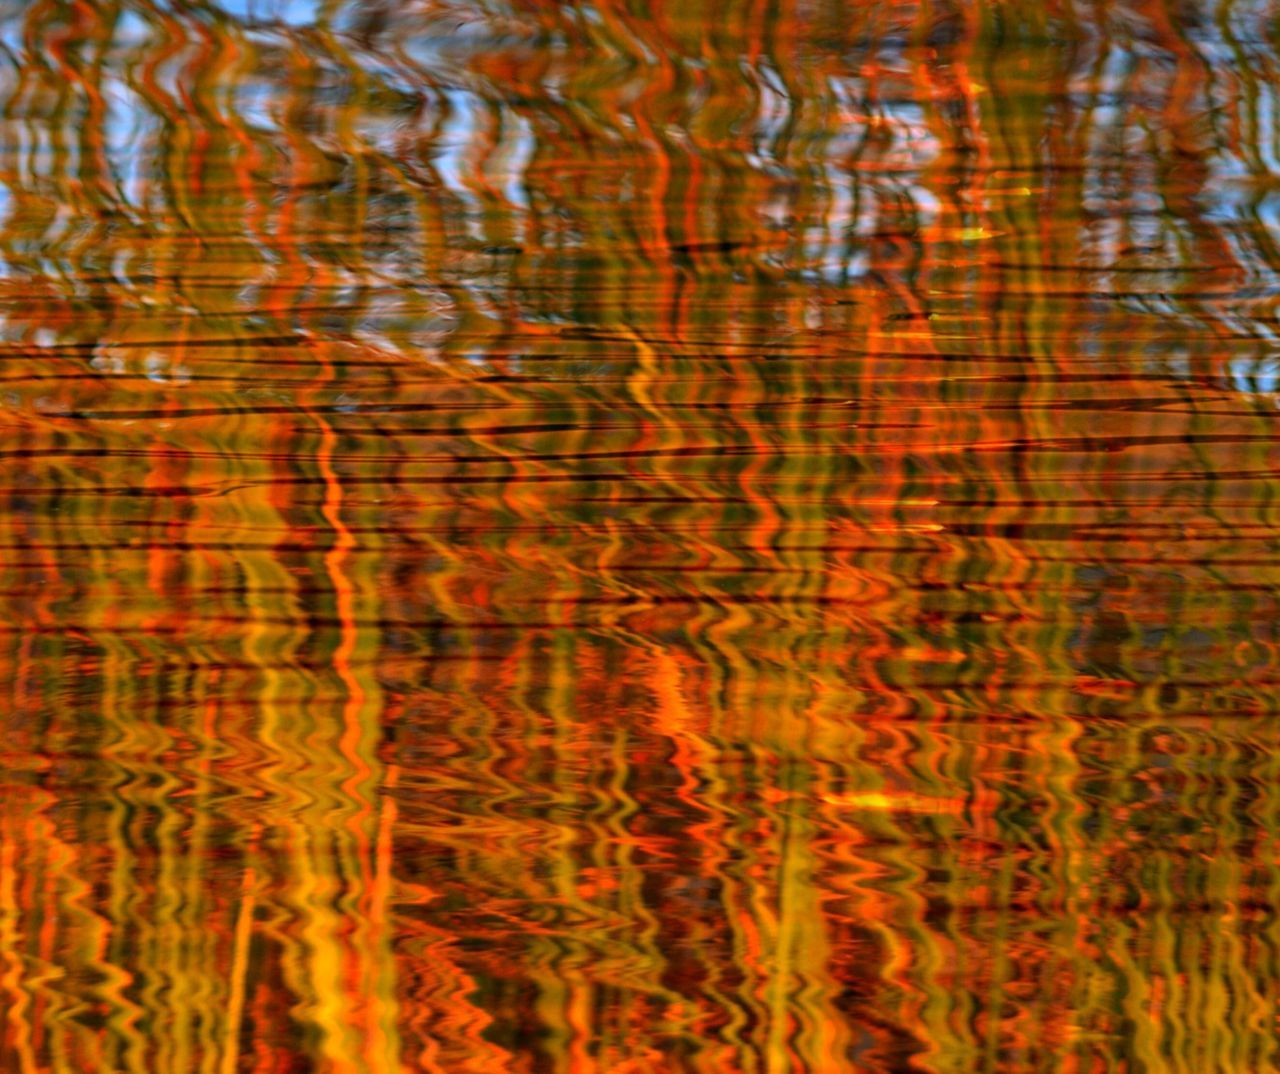 Double Exposure Abstract Grass Reflections and Sunset Reflections water reflections Ripples Tall Grasses Golden Moment